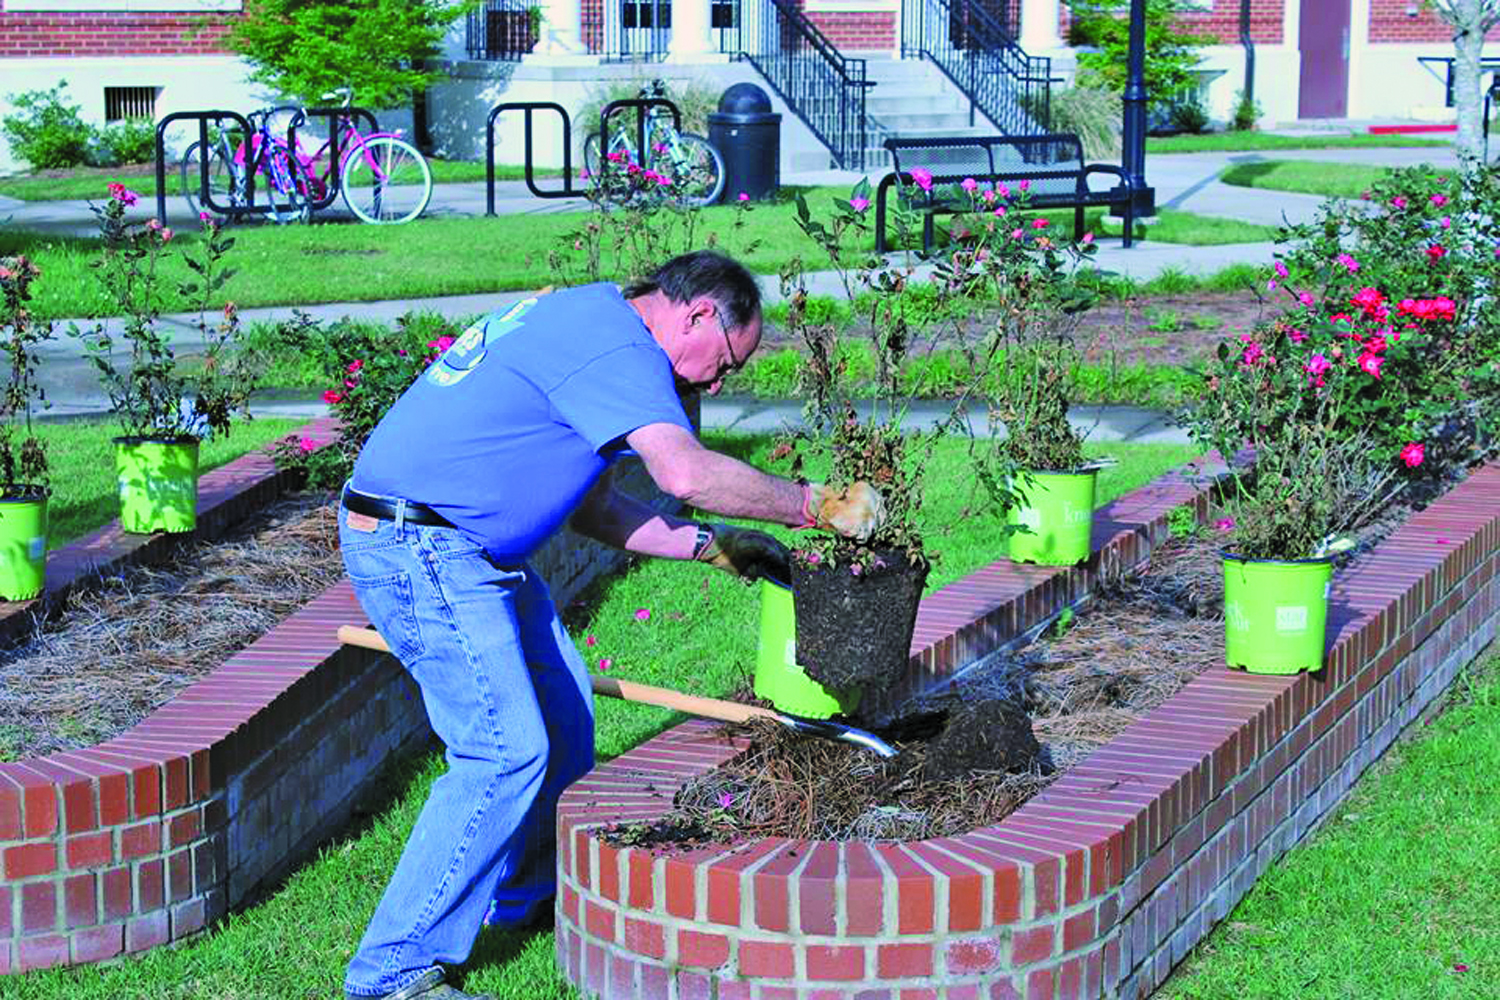 (Bottom photo) Members of the church spruced up flower beds on the campus of the University of Louisiana-Lafayette.